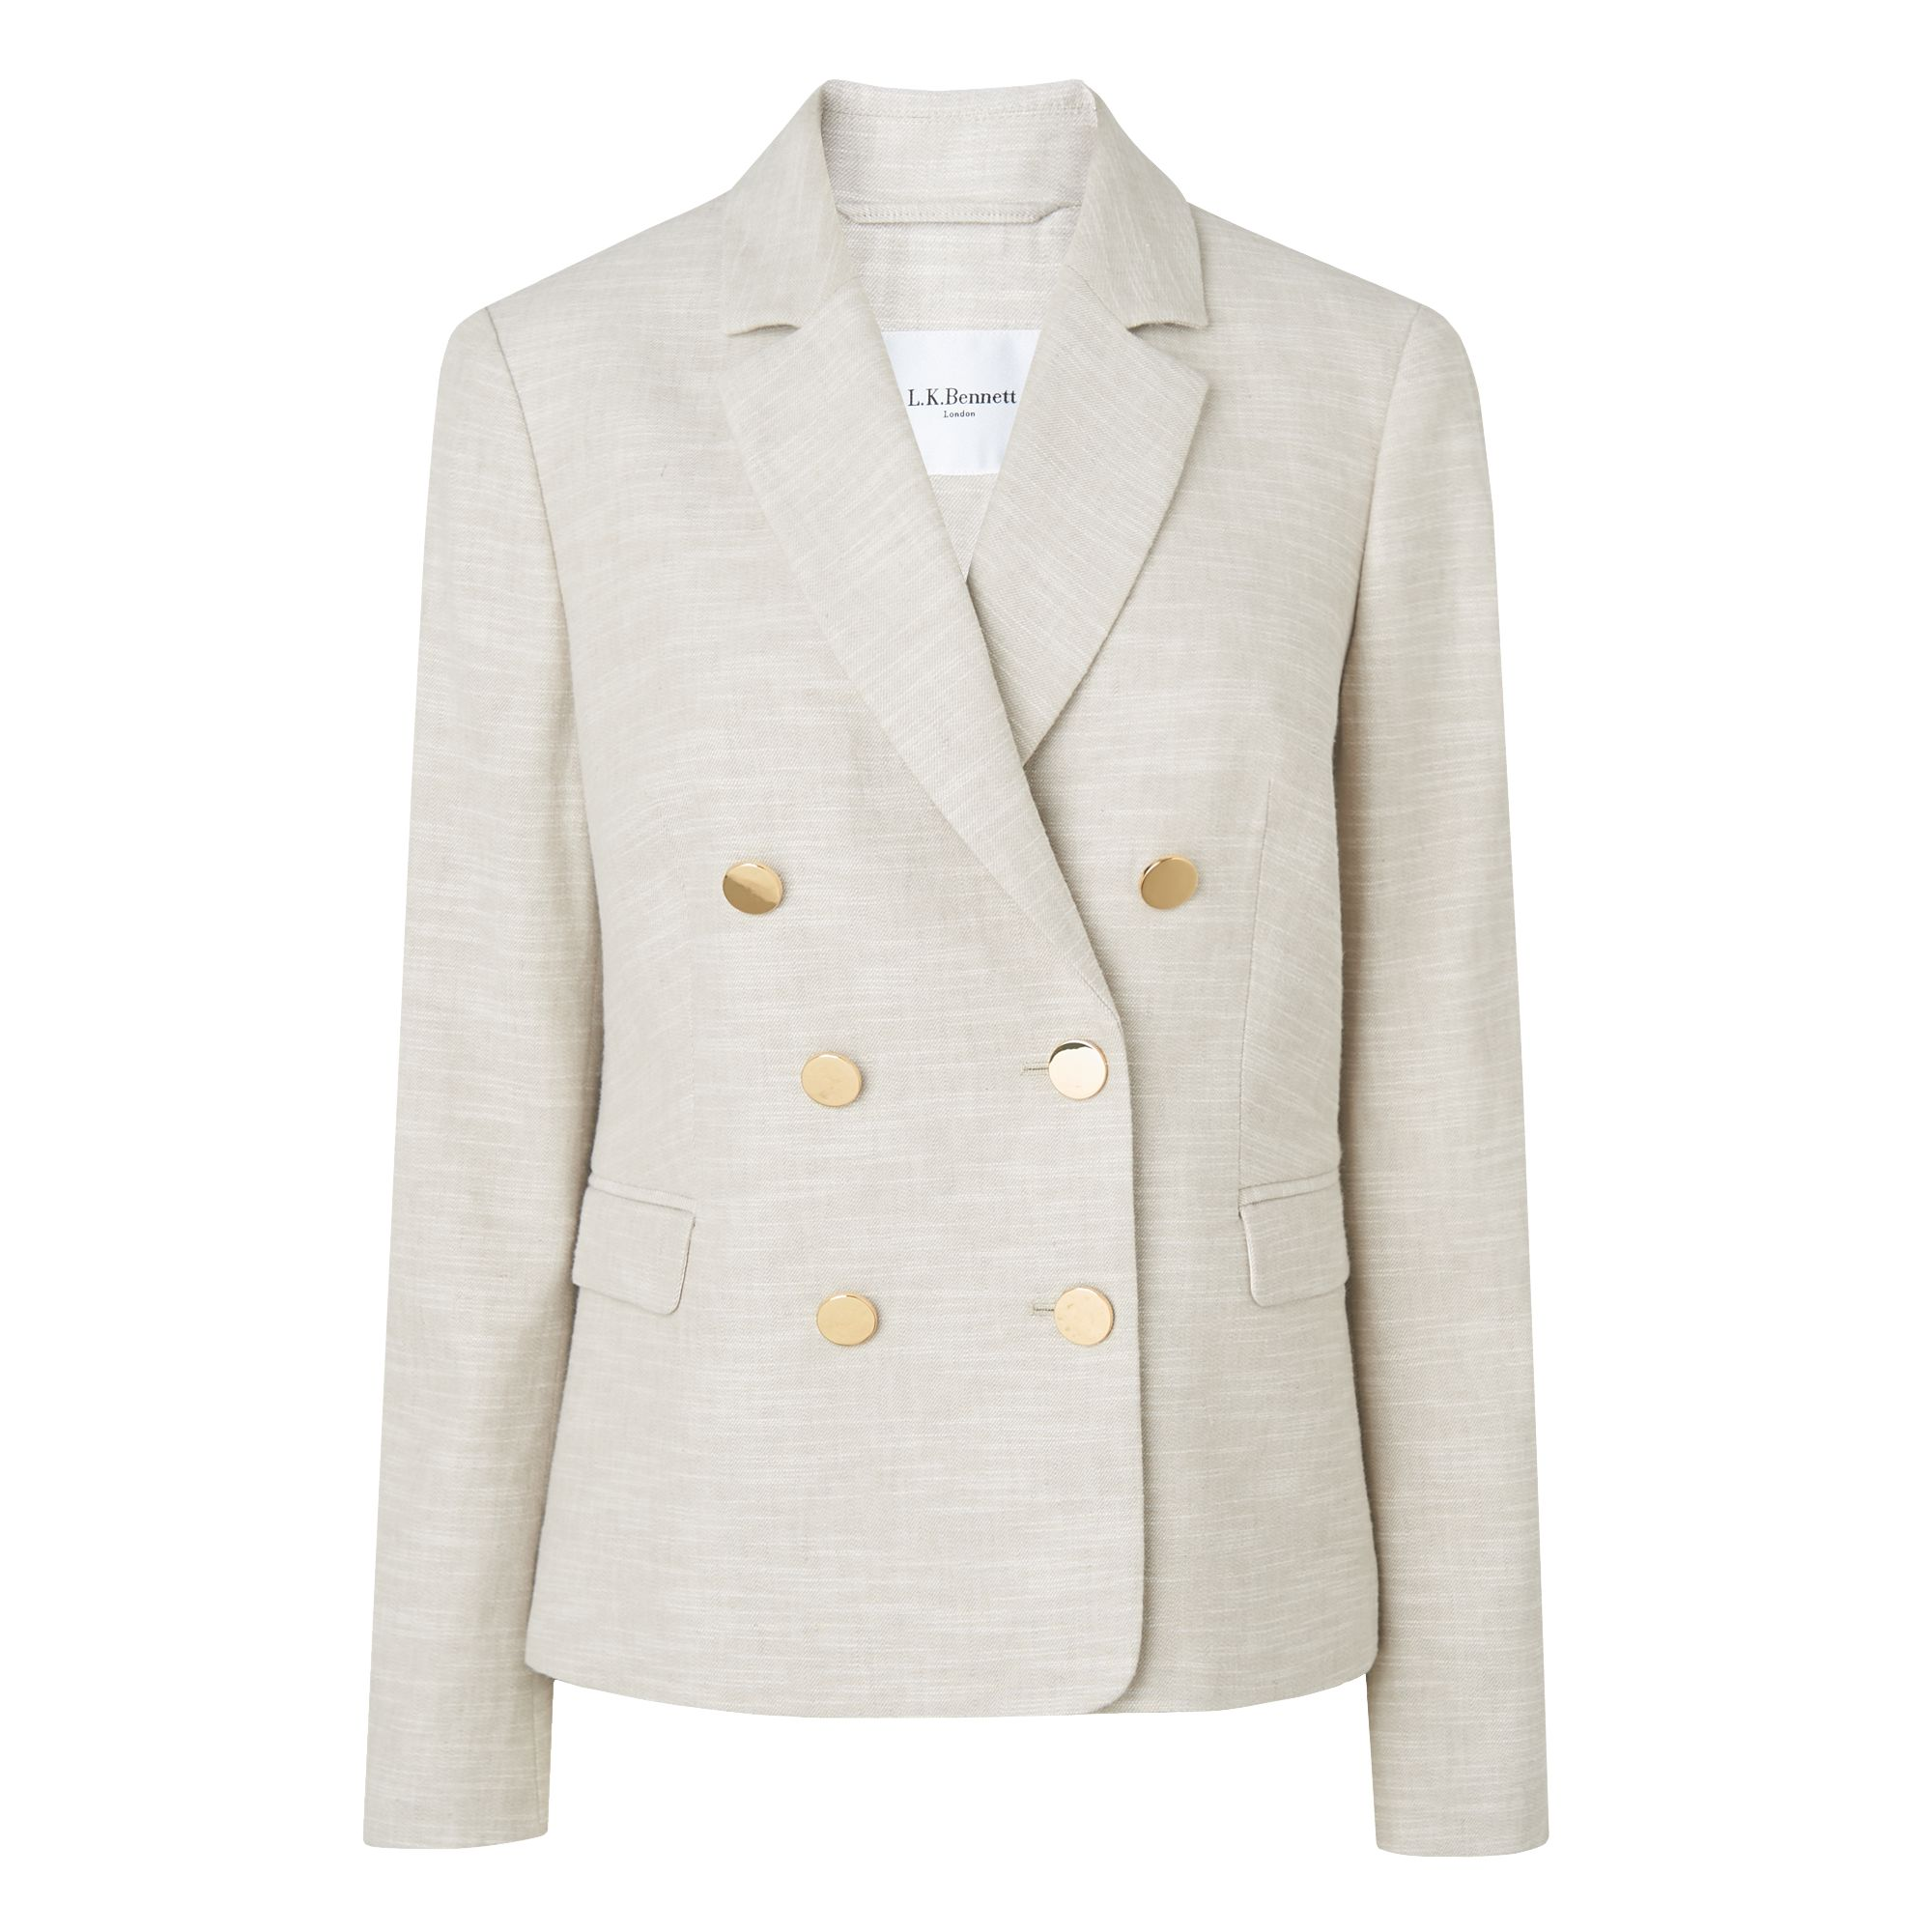 L.K. Bennett Nixie Linen Jacket, Grey